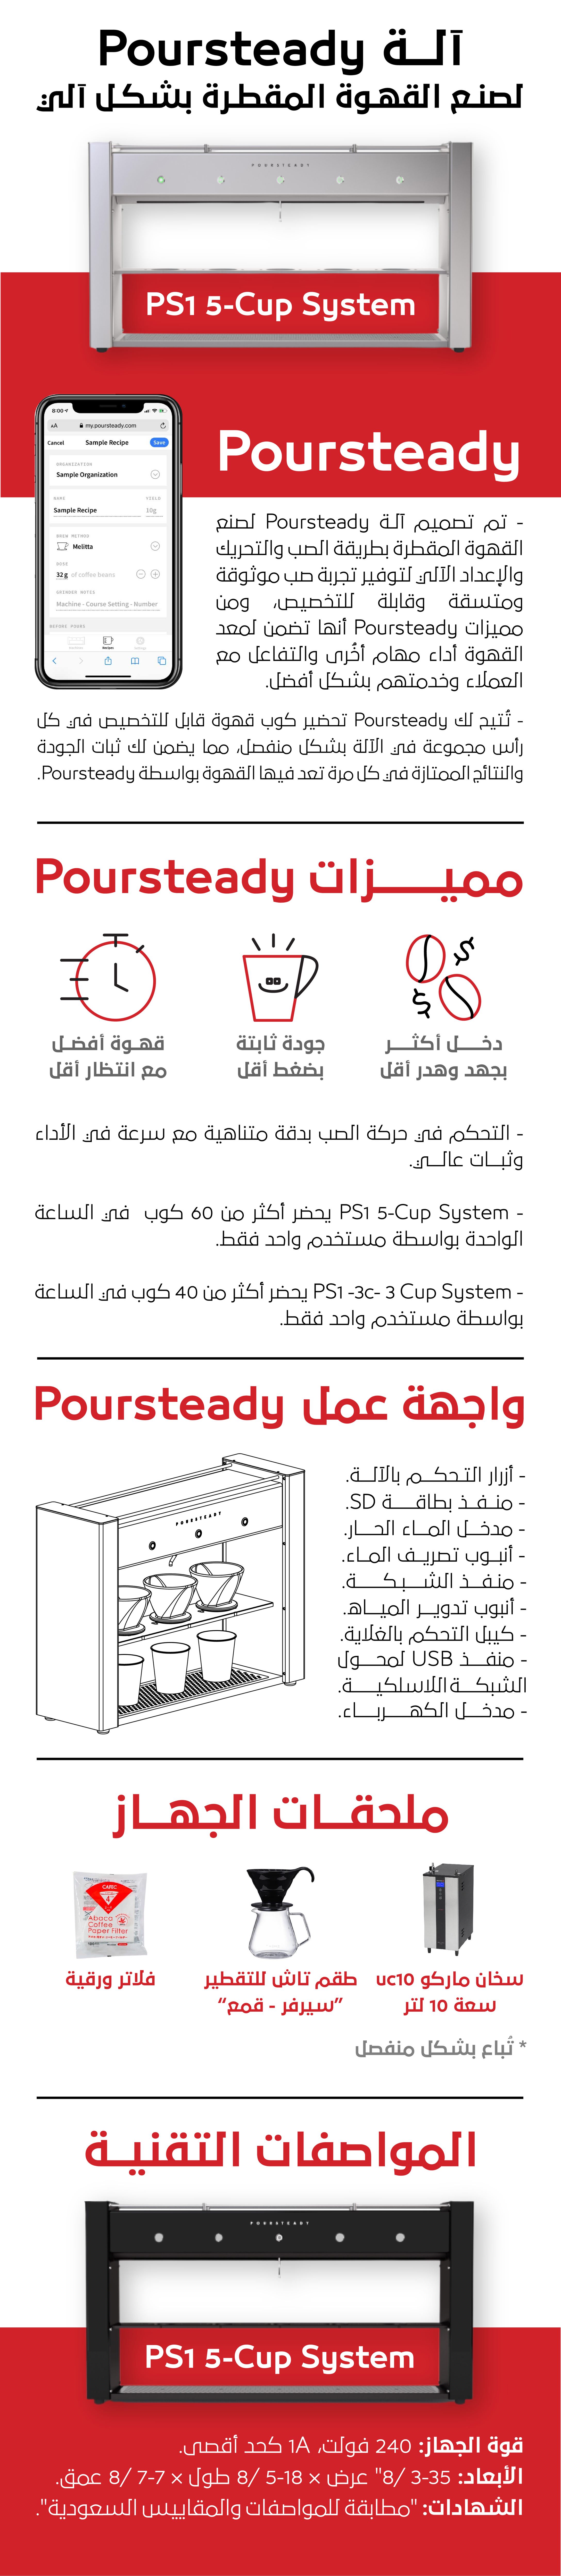 poursteady product page-03.jpg